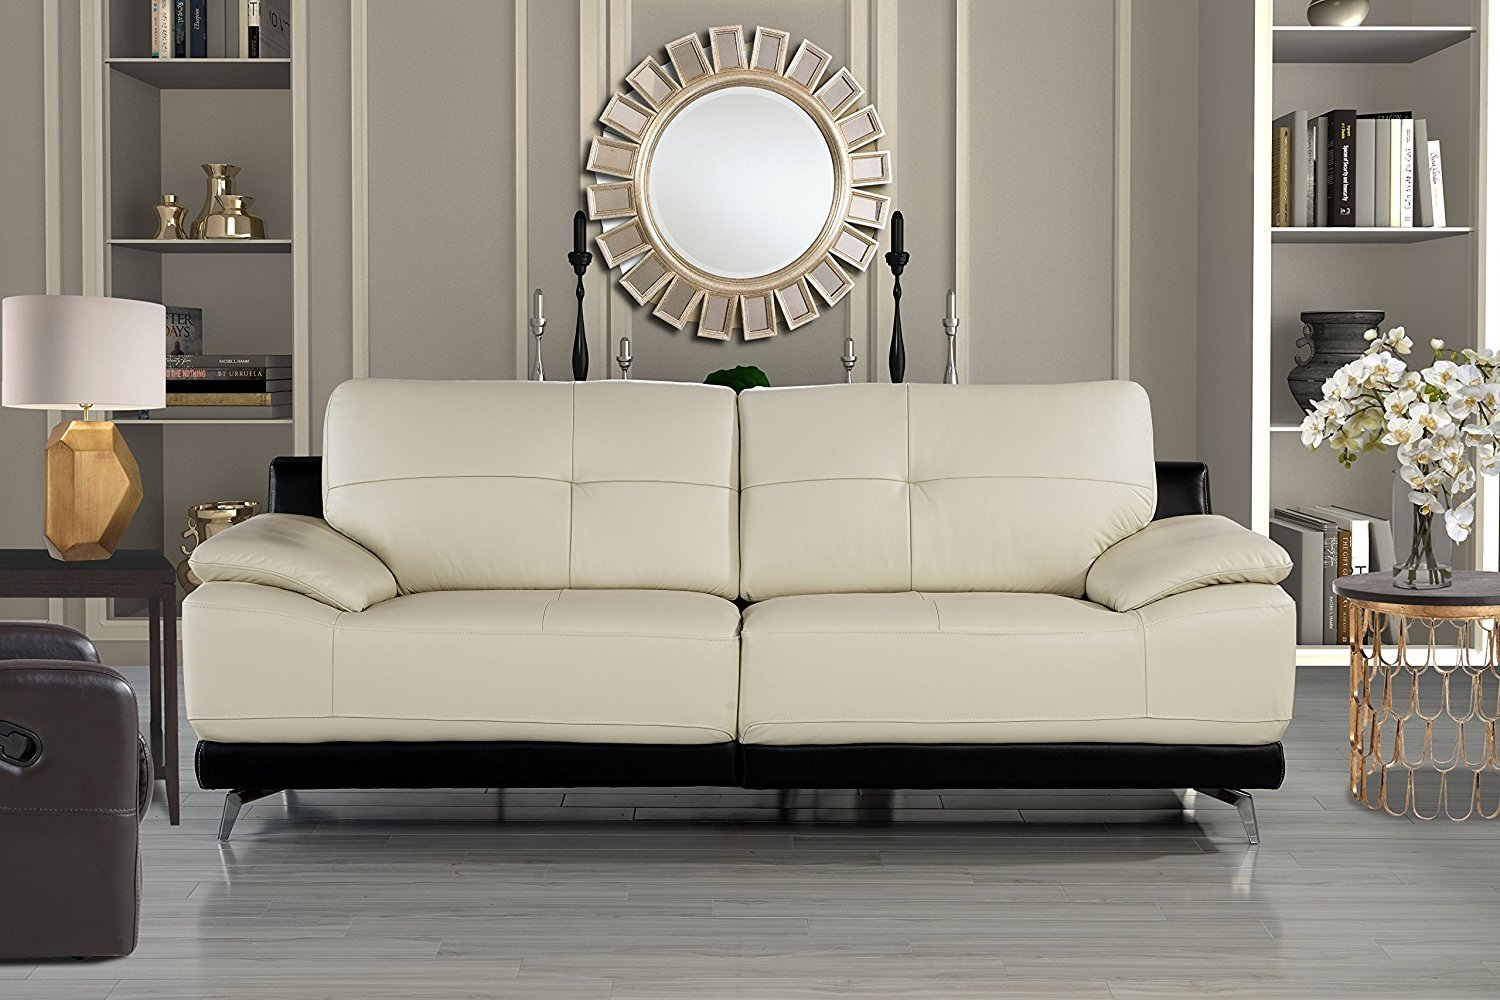 Details about Modern Contemporary Living Room Leather Sofa, Classic Couch  (Beige)